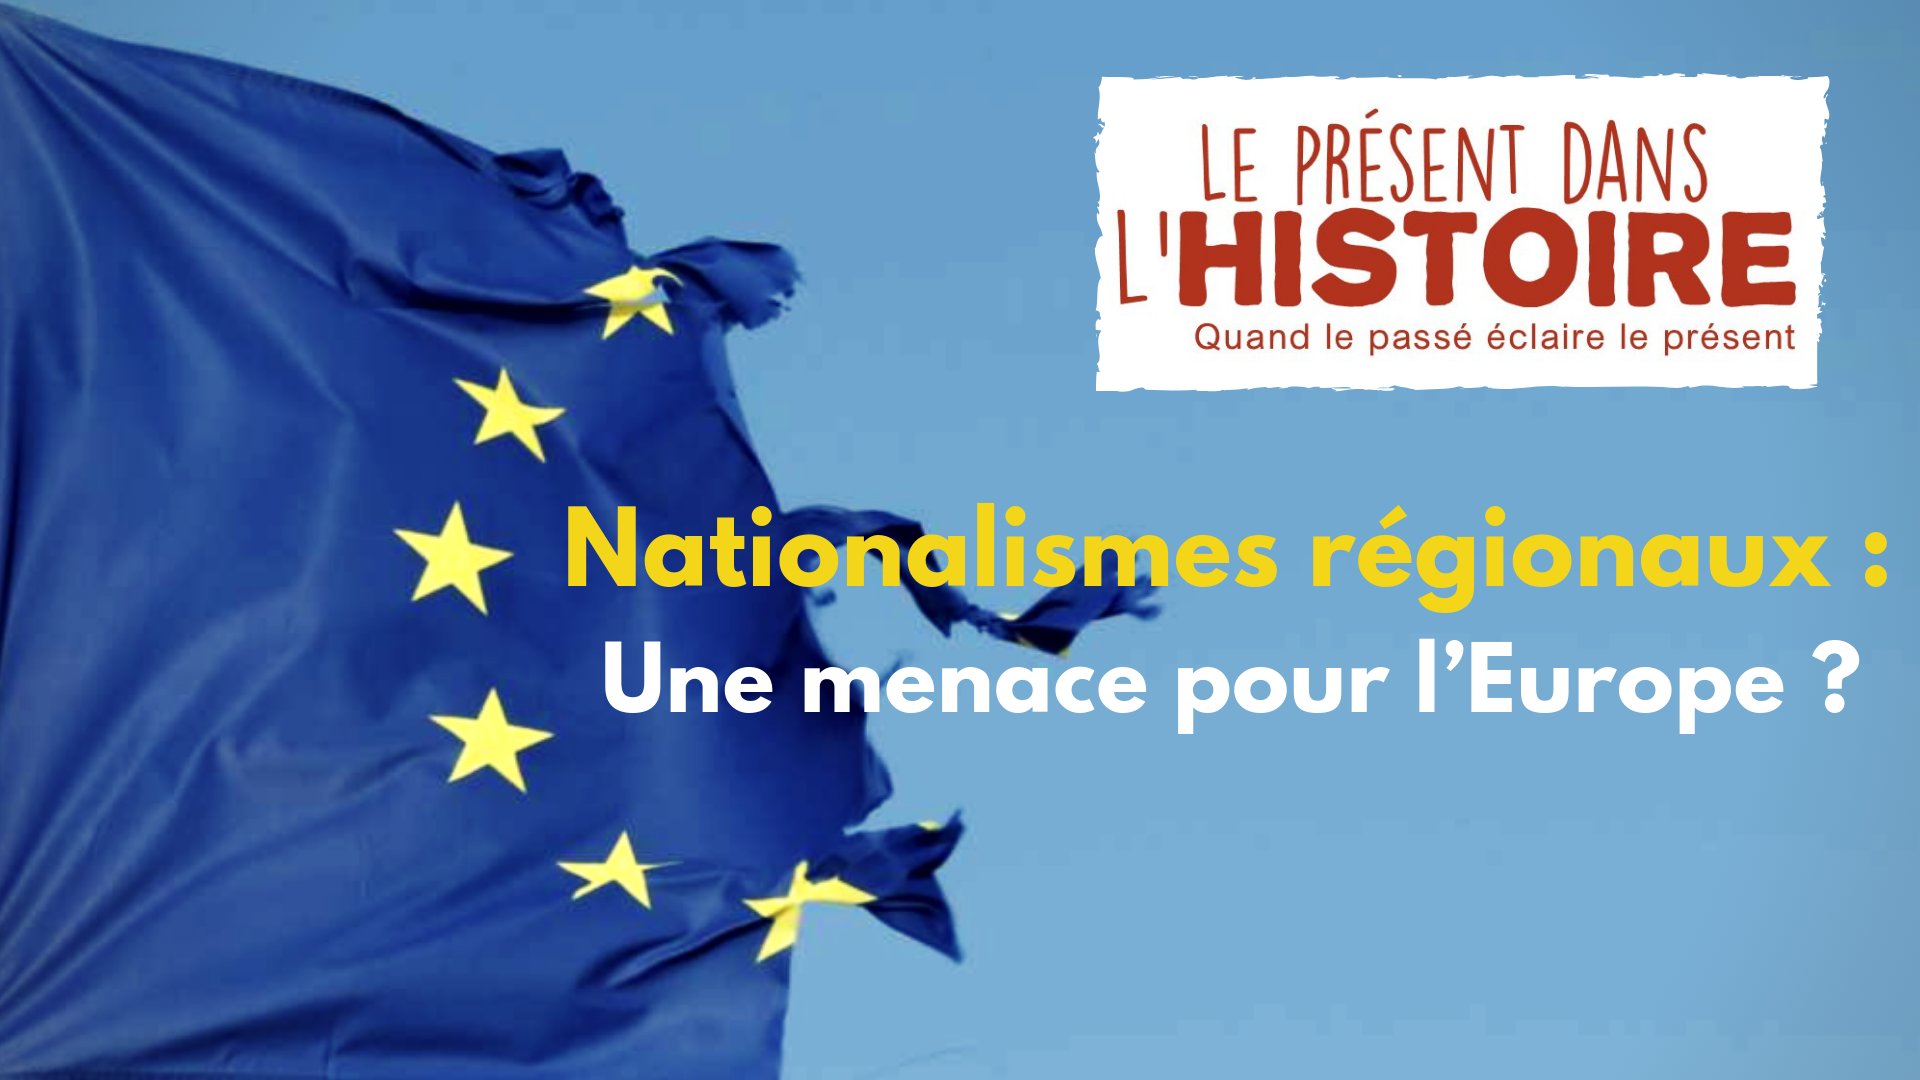 Nationalismes regionaux